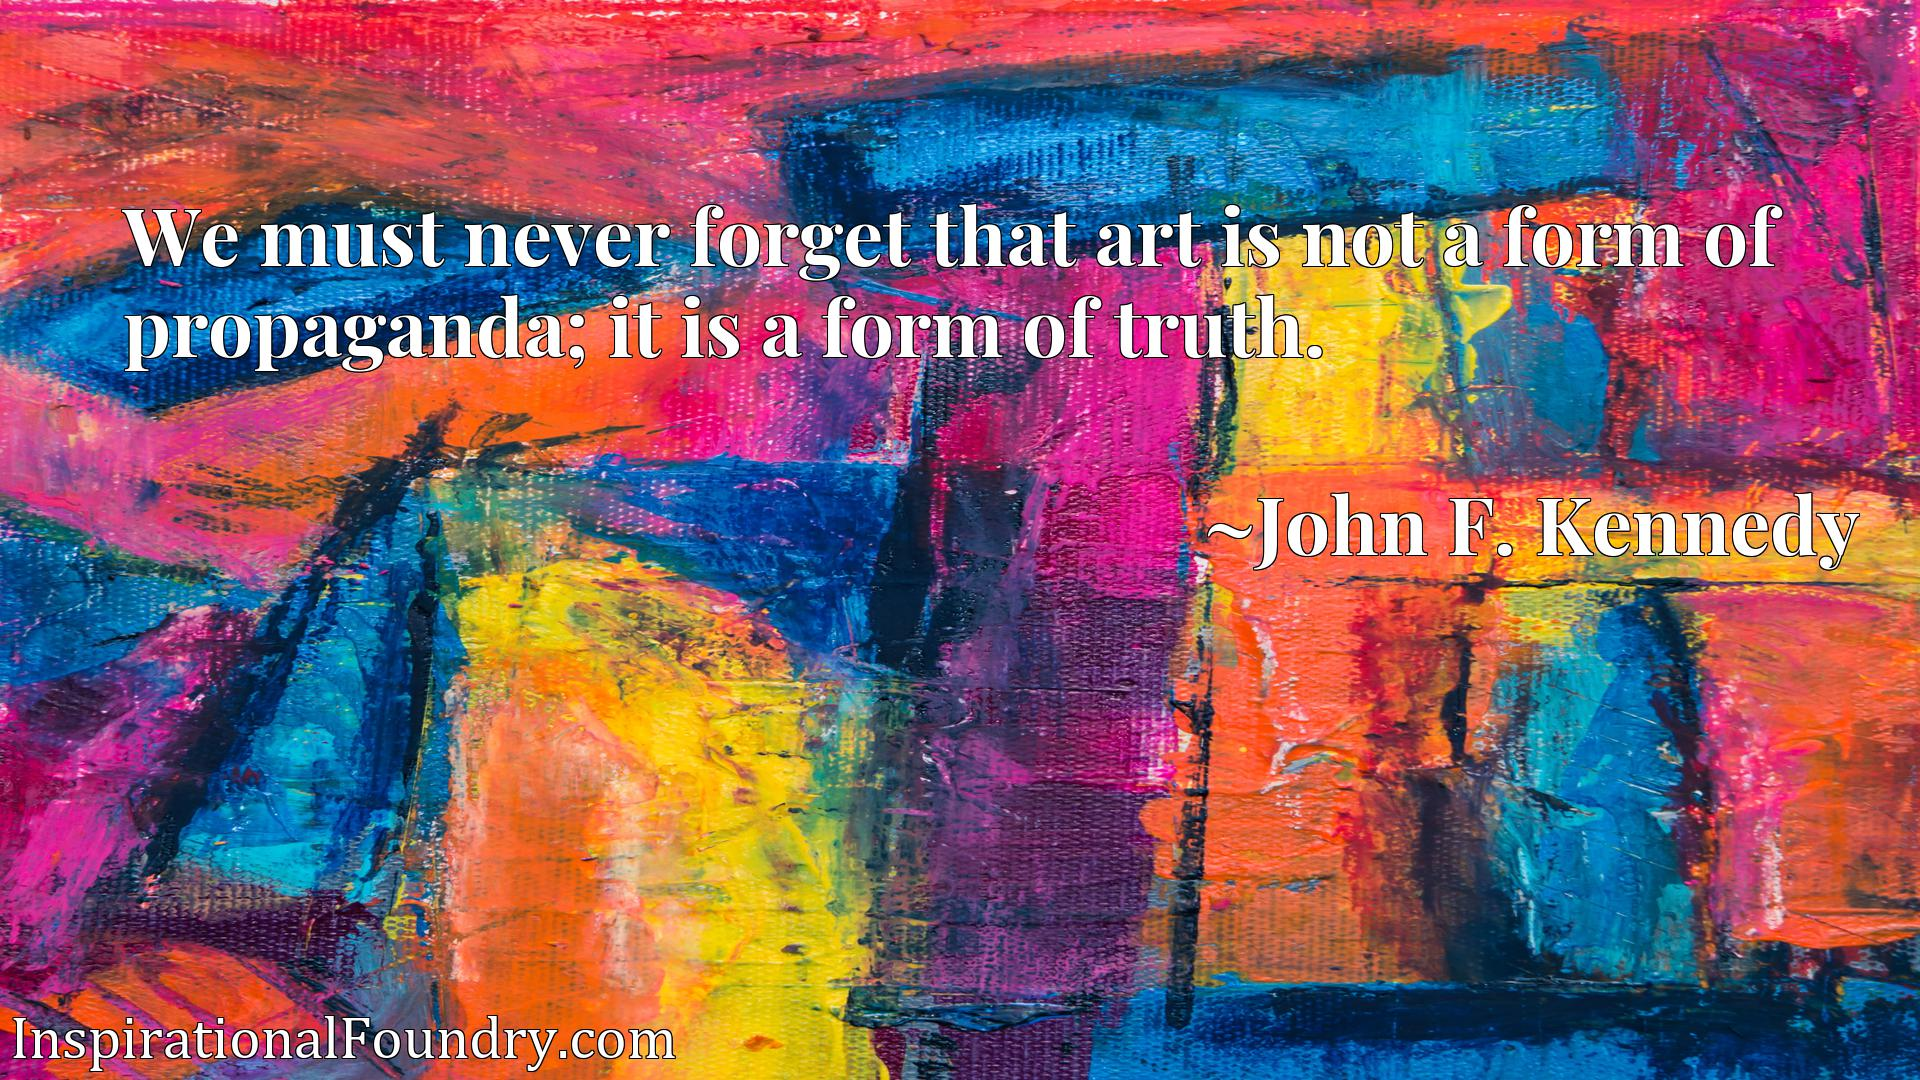 We must never forget that art is not a form of propaganda; it is a form of truth.